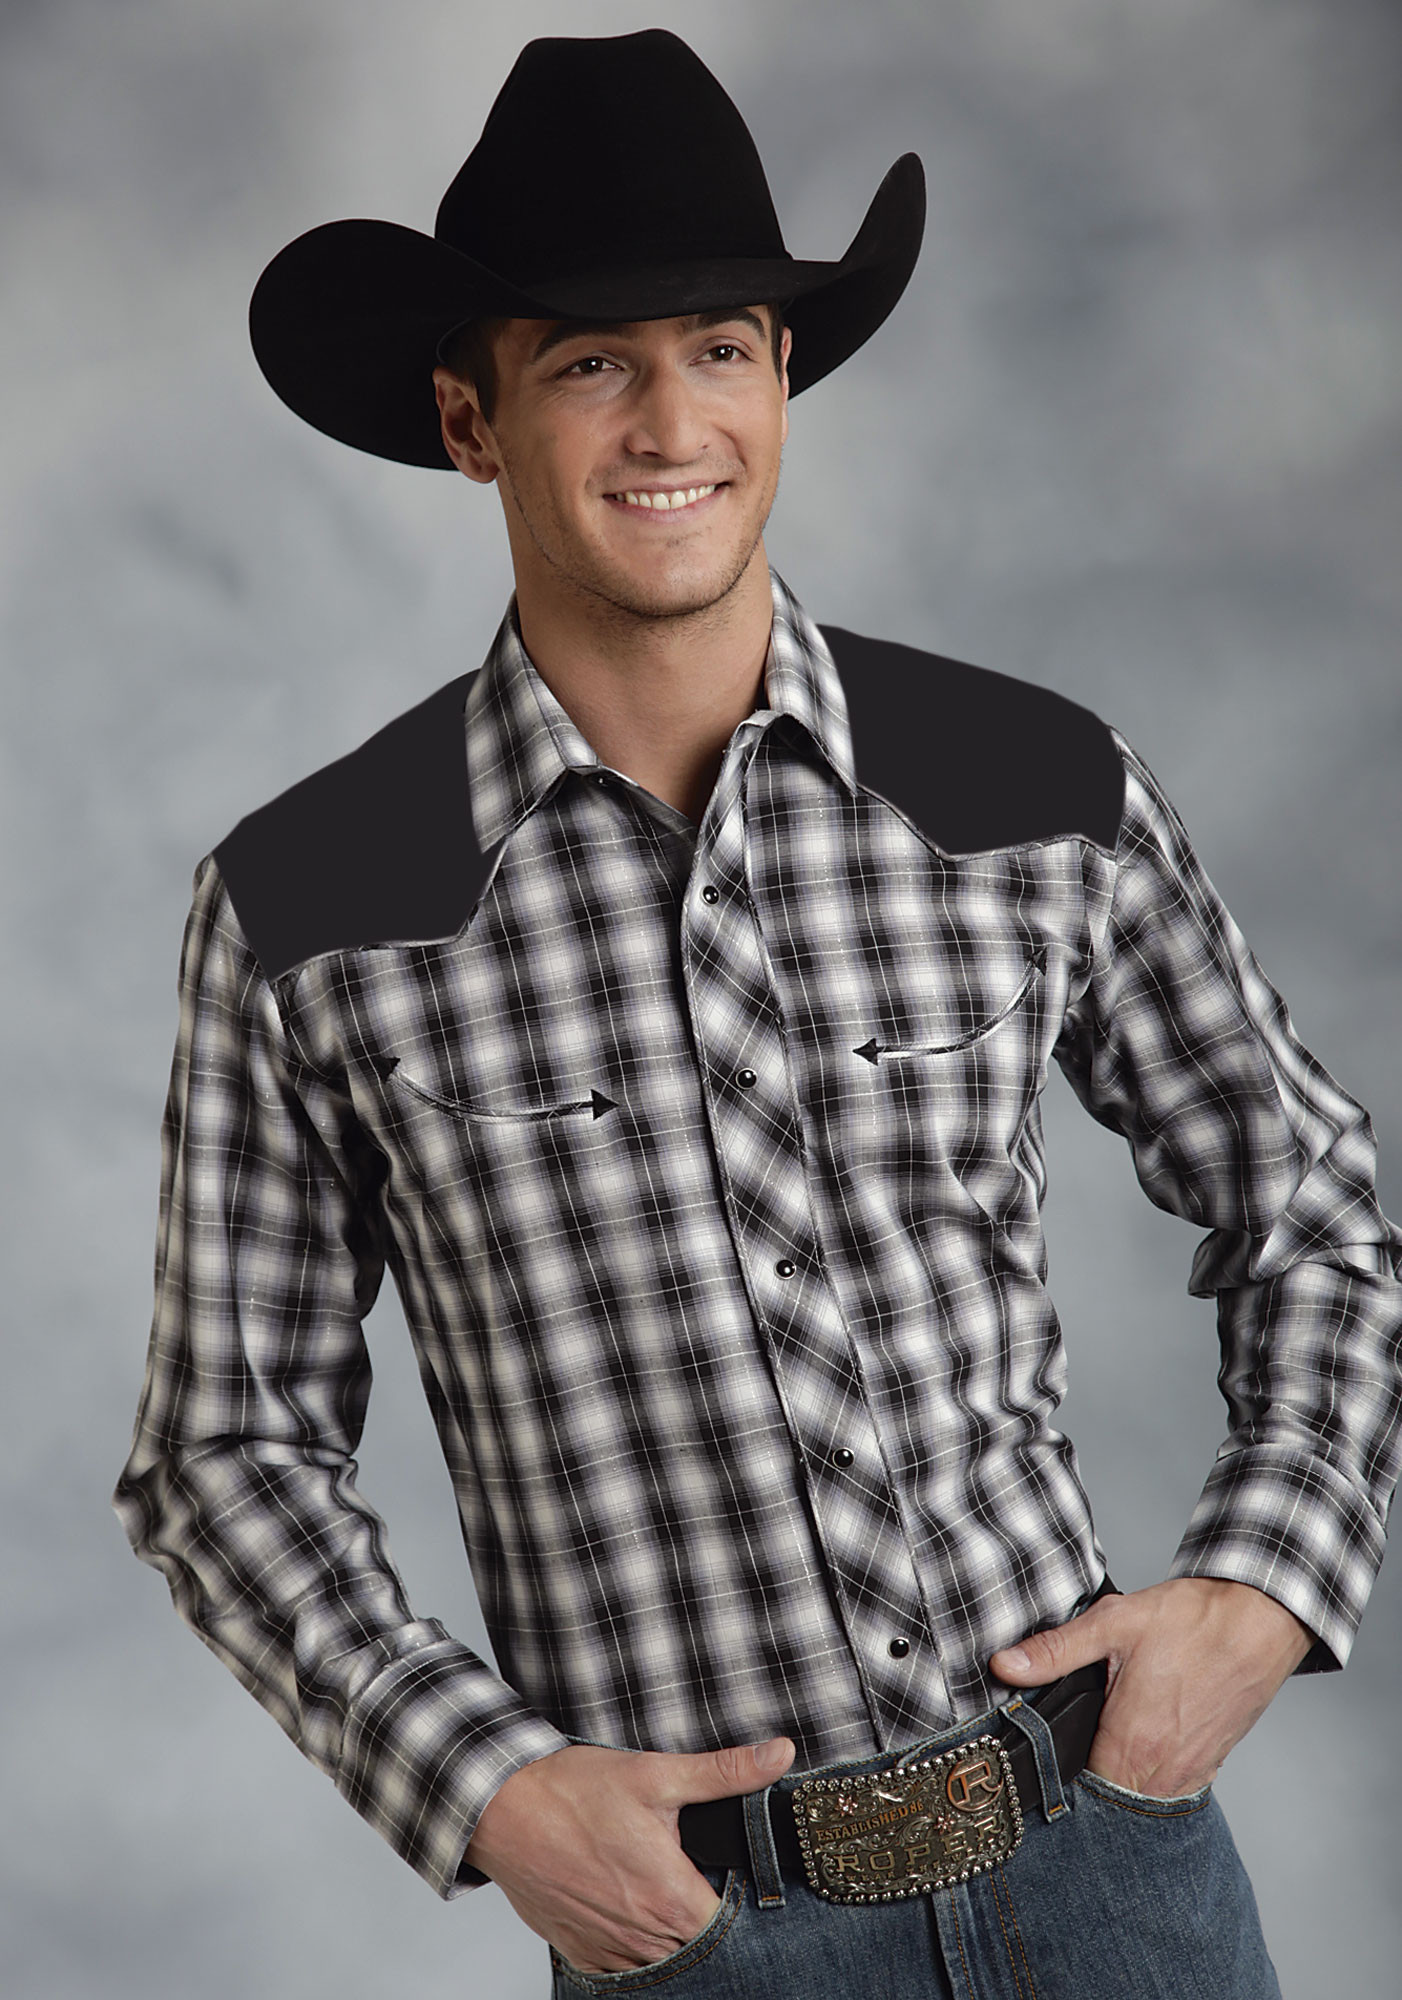 Over 30, Men's Long Sleeve Western Shirts at ganjamoney.tk: Snap Long Sleeve Shirts, Wrangler Long Sleeve Shirts, Stetson Long Sleeve Shirts, Western Long Sleeve Shirts and more - in .